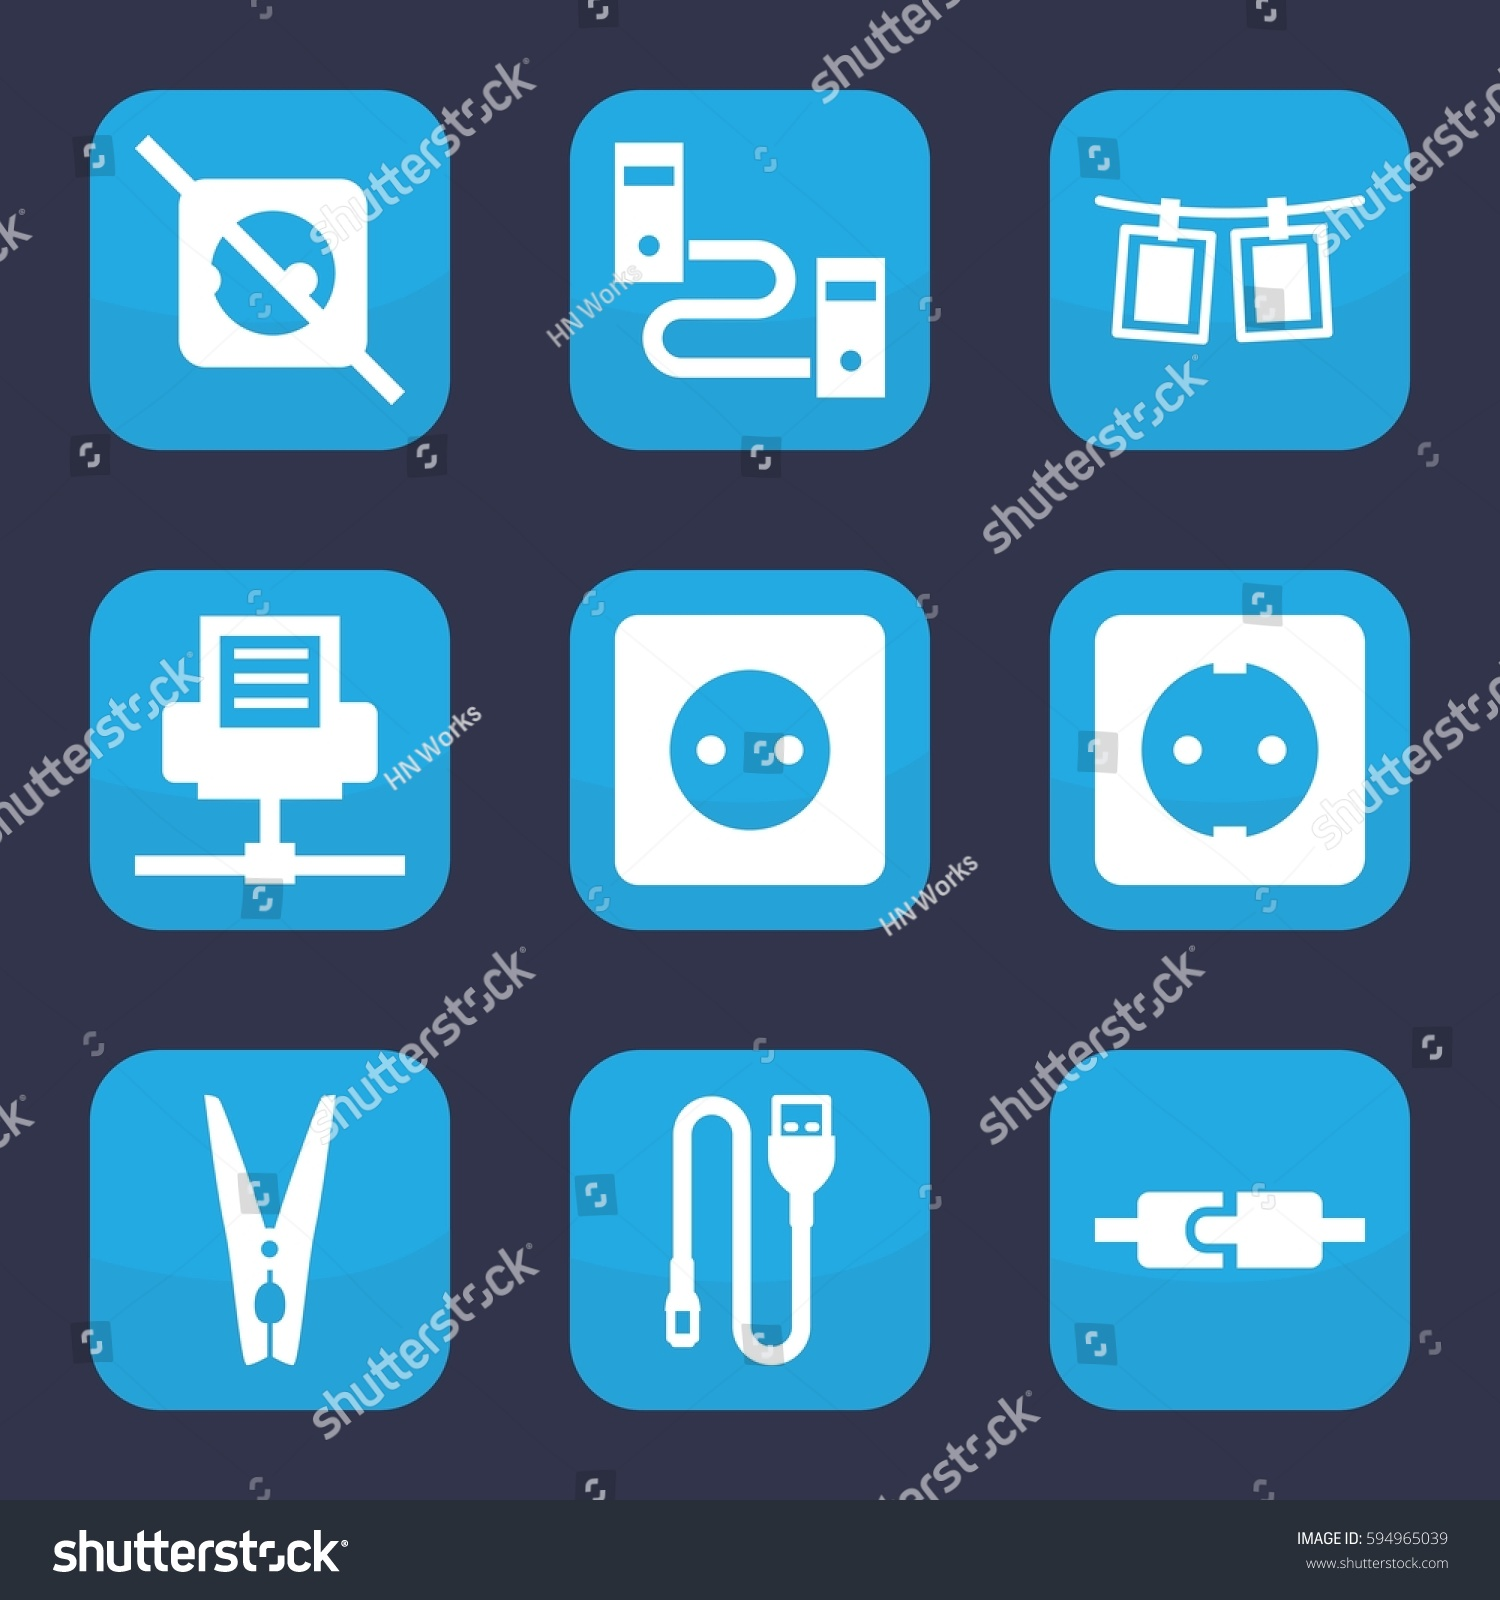 Wire Chord Icon Data Schema Kawasaki Klr650 A9 1995 Motorcycle Electrical Wiring Diagram All Cord Set 9 Filled Stock Vector Royalty Free 594965039 Rh Shutterstock Com Metal Chords Walking On A